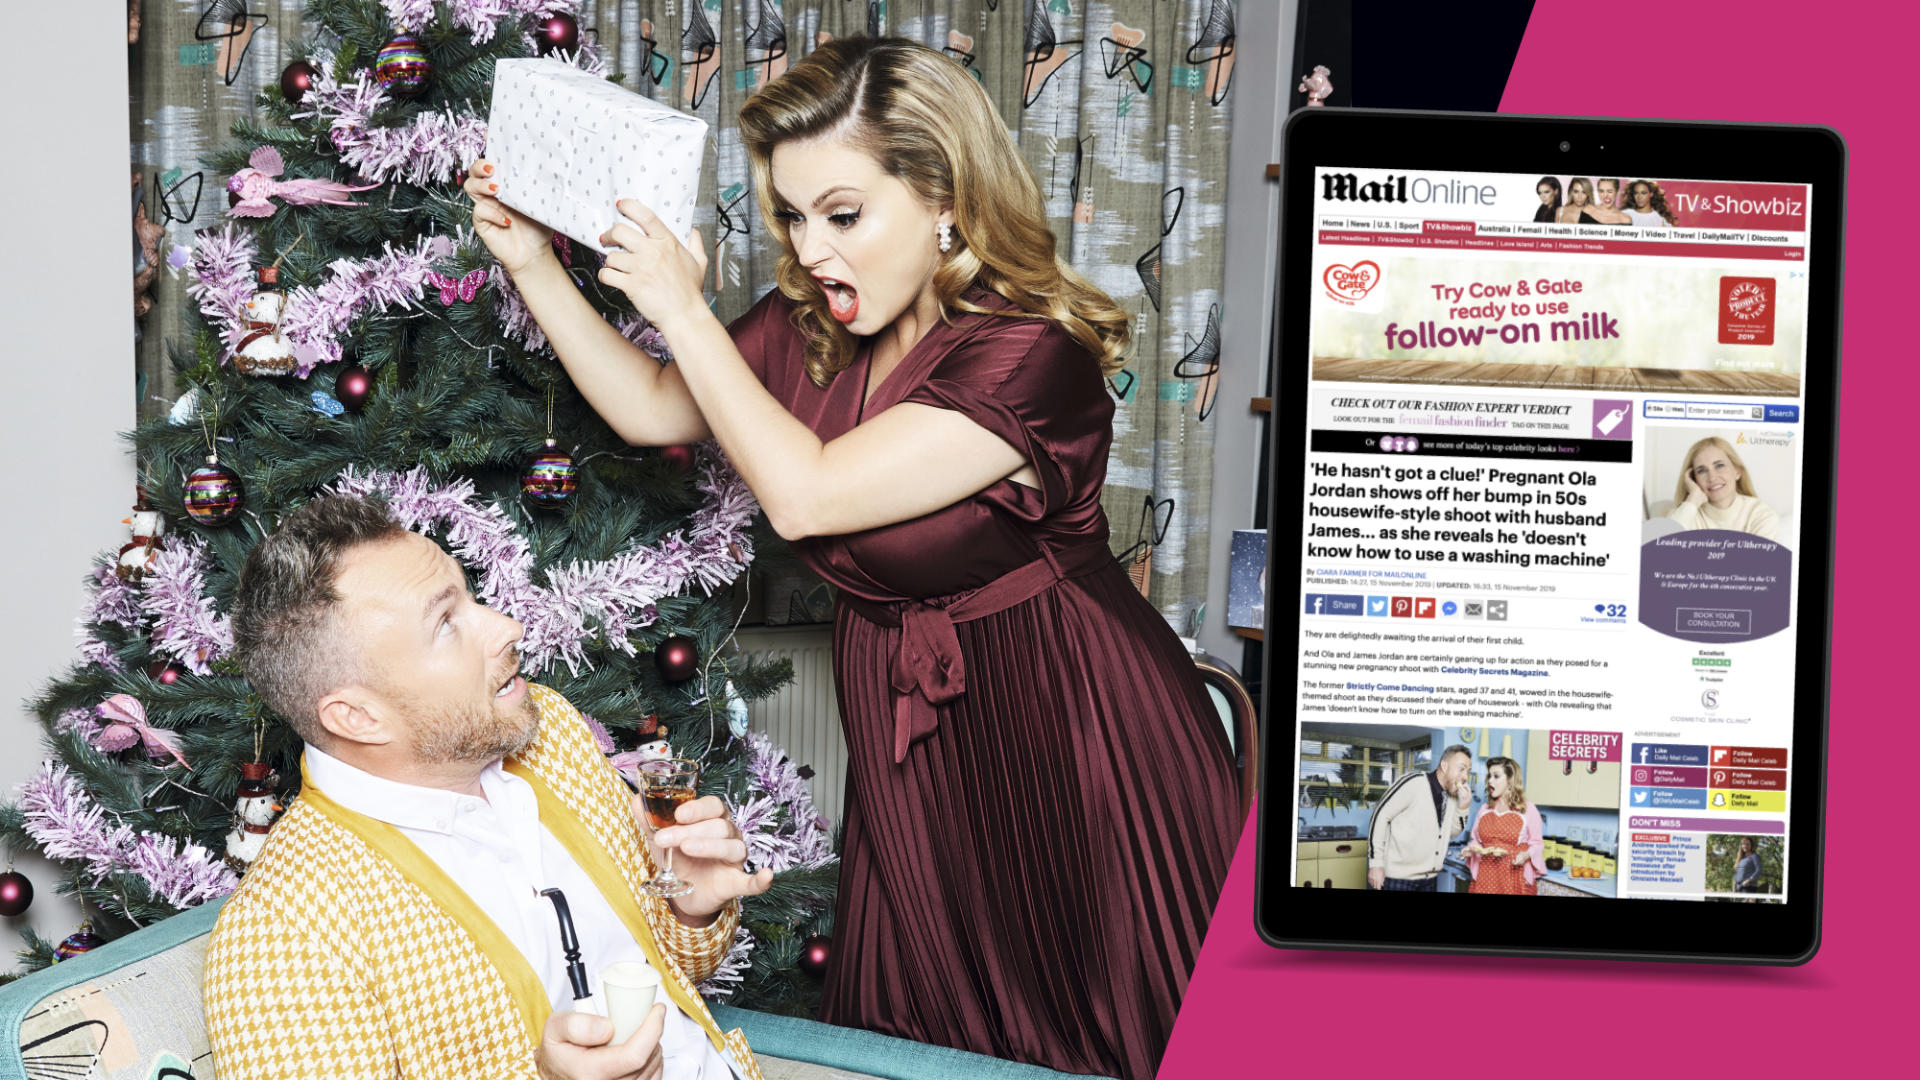 Ola & James Jordan's Celebrity Secrets photoshoot and interview receives national press coverage